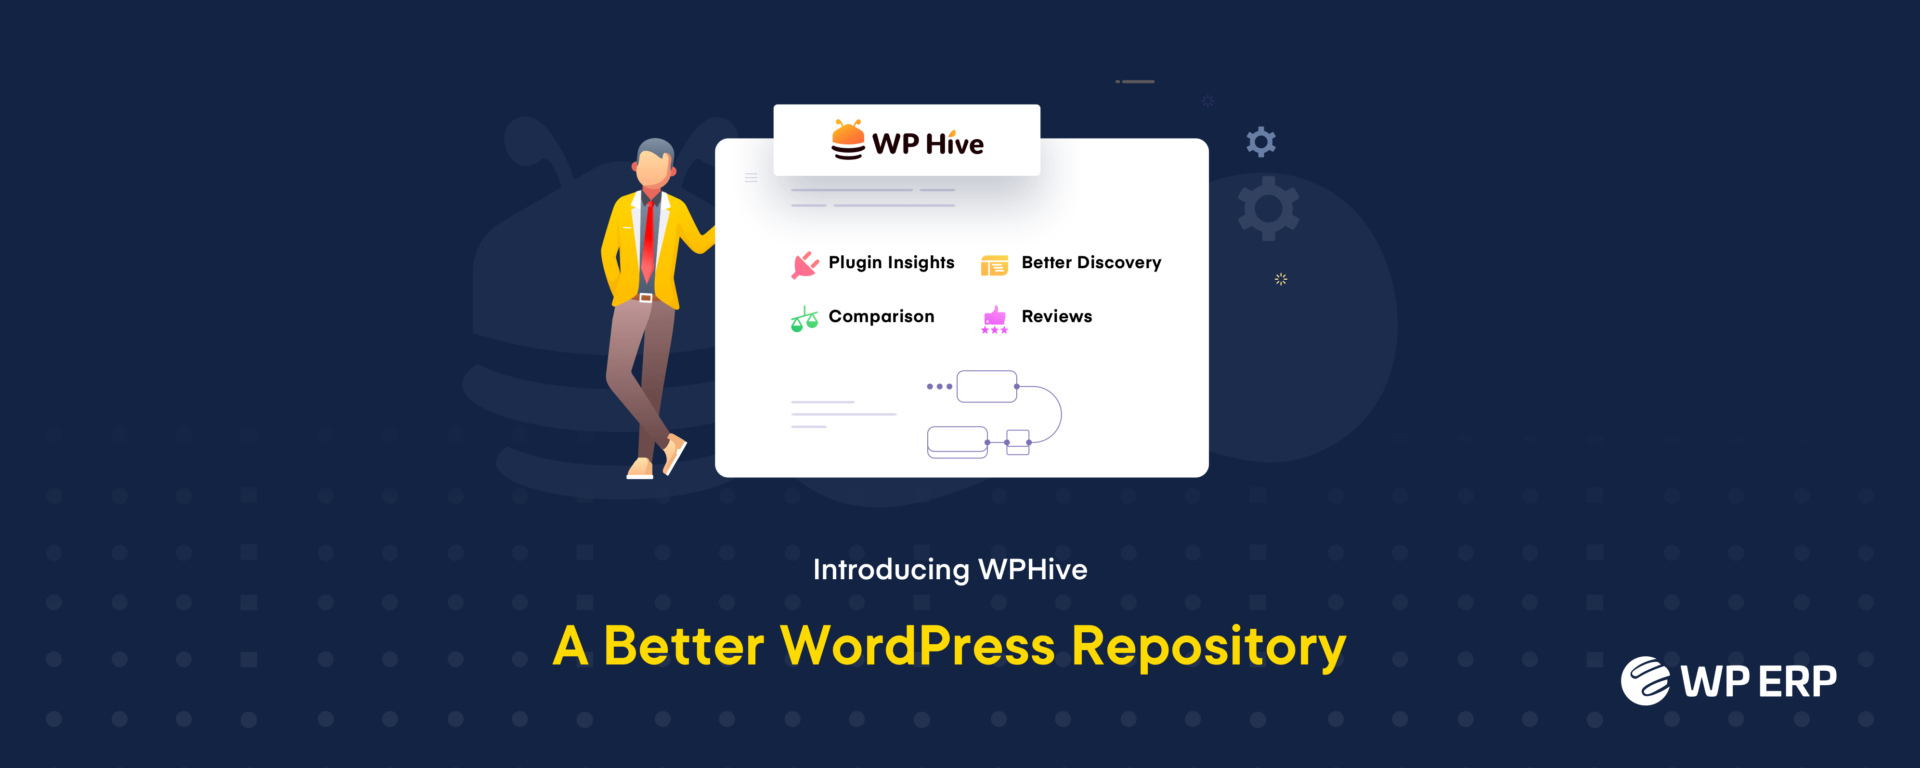 Introducing WPHive Blog_ERP